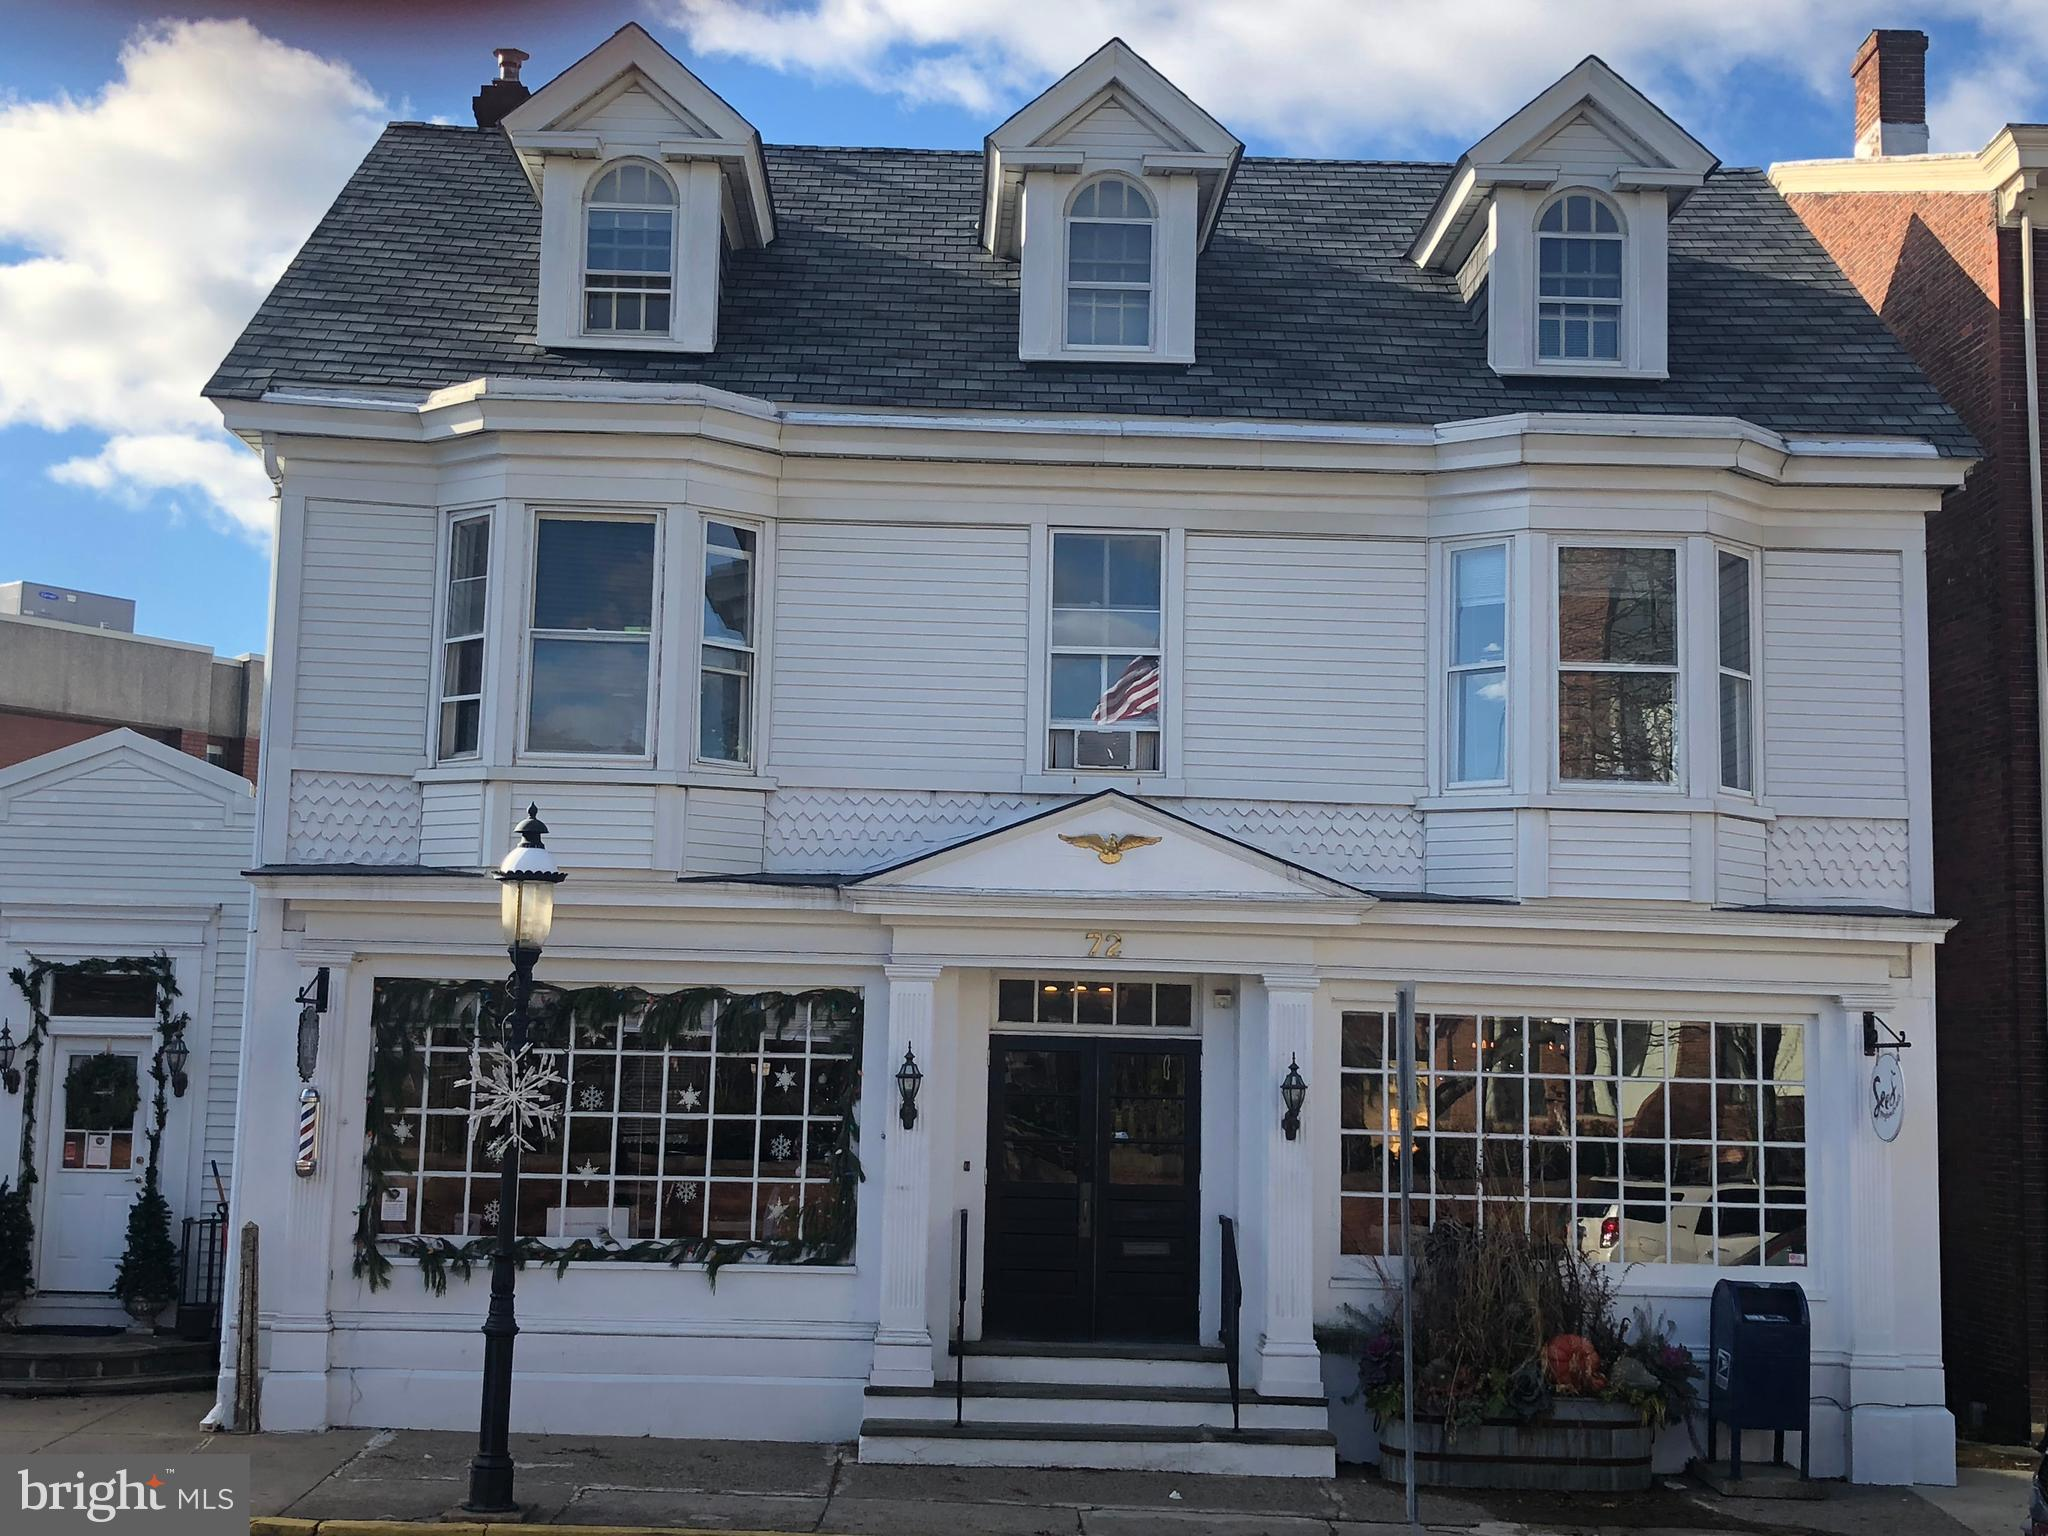 72 N MAIN STREET, DOYLESTOWN, PA 18901